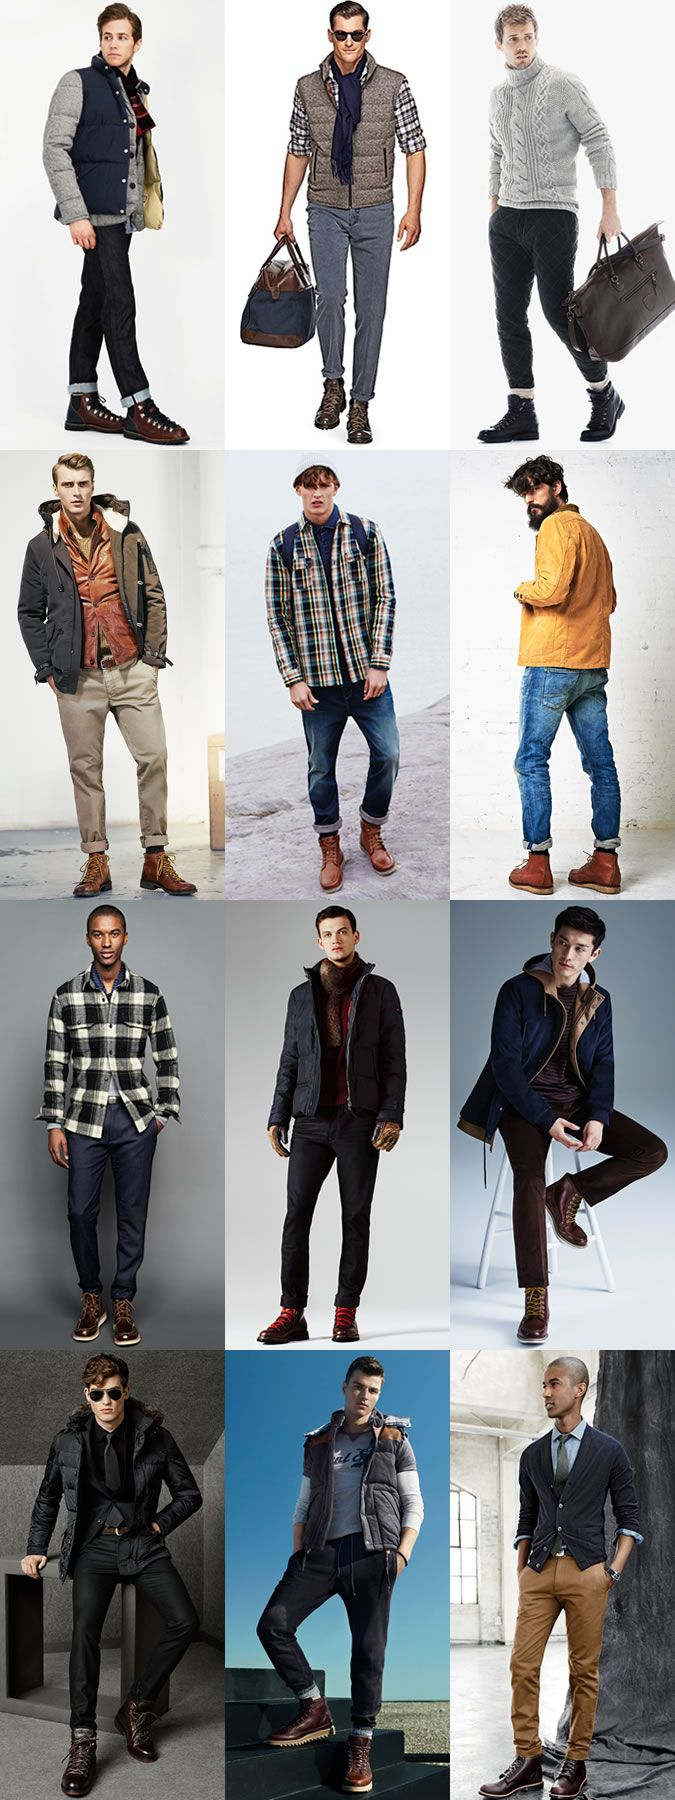 5 Classic Men's Autumn/Winter Boot Styles: 1. Hiking Boots Outfits Lookbook Inspiration